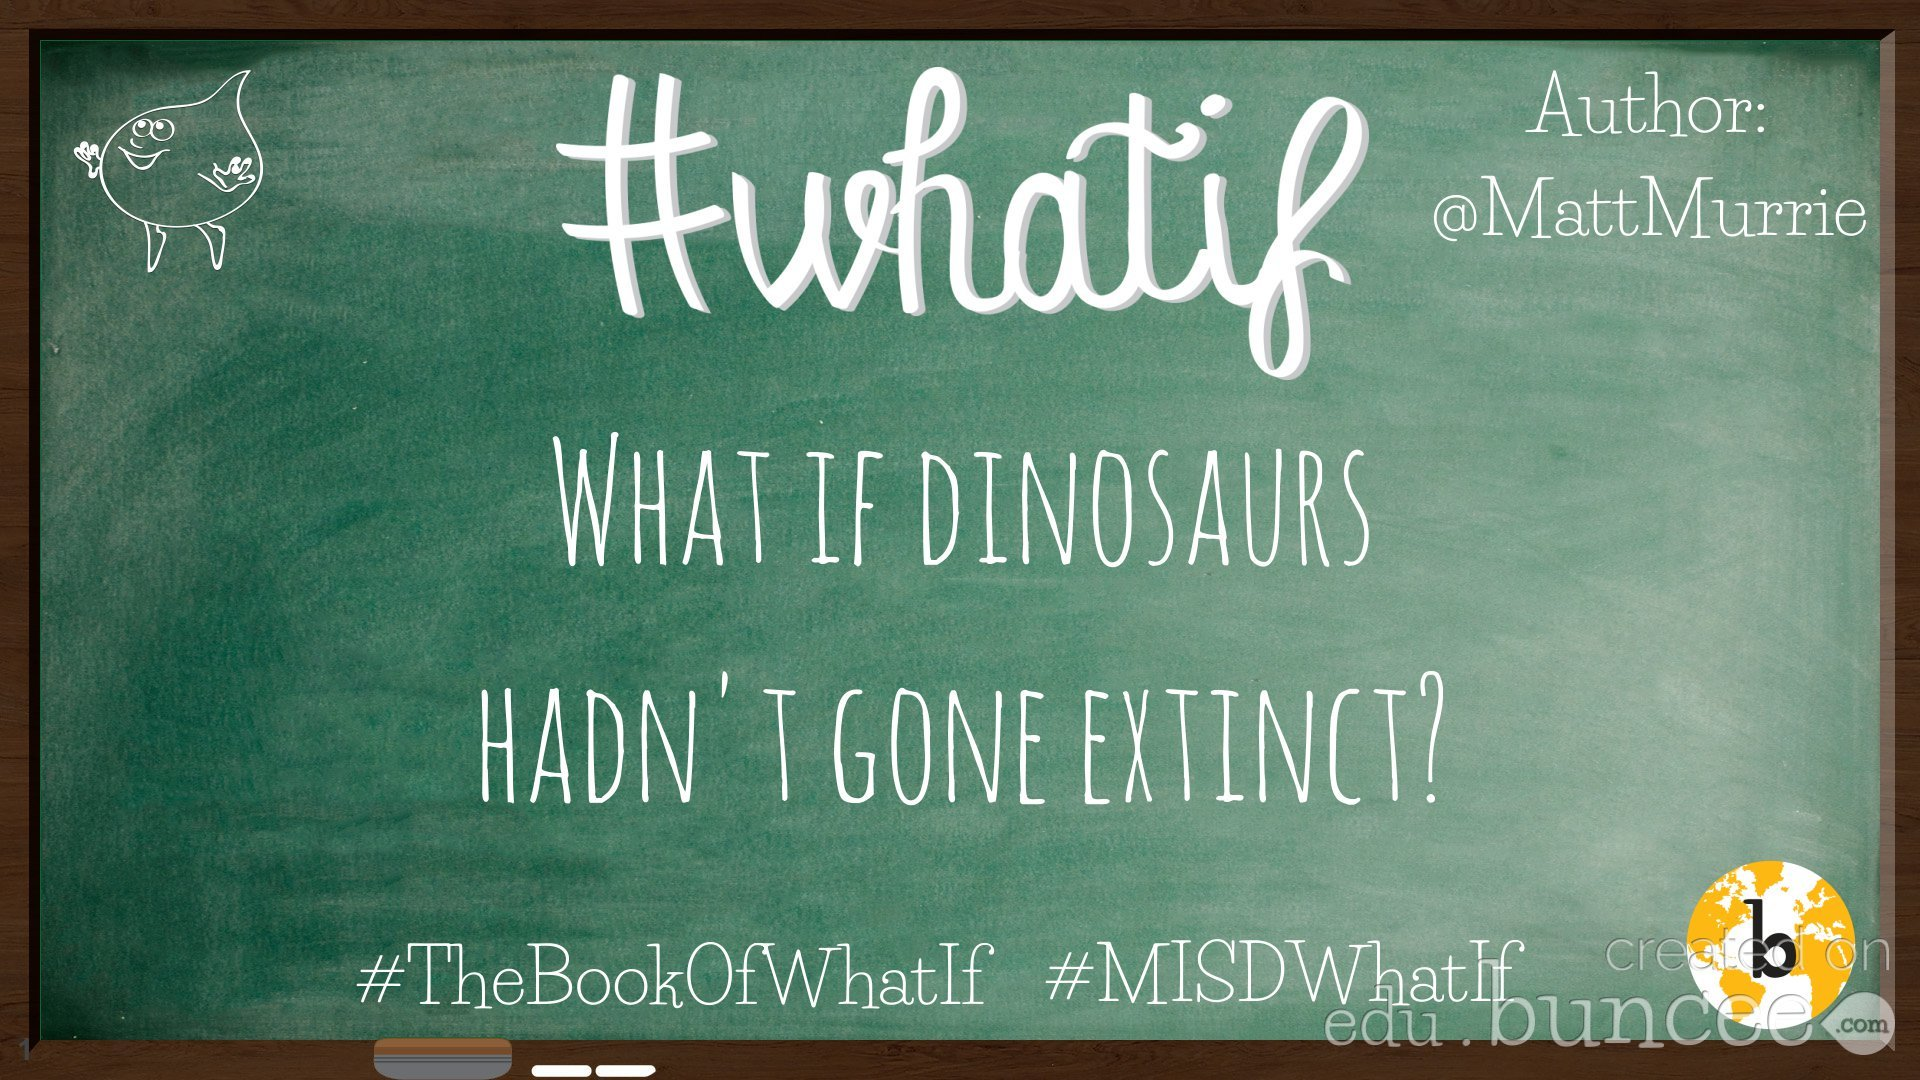 #misdwhatif #celebratemonday @MattMurrie  @mre_ranch https://t.co/FON1XG08QE